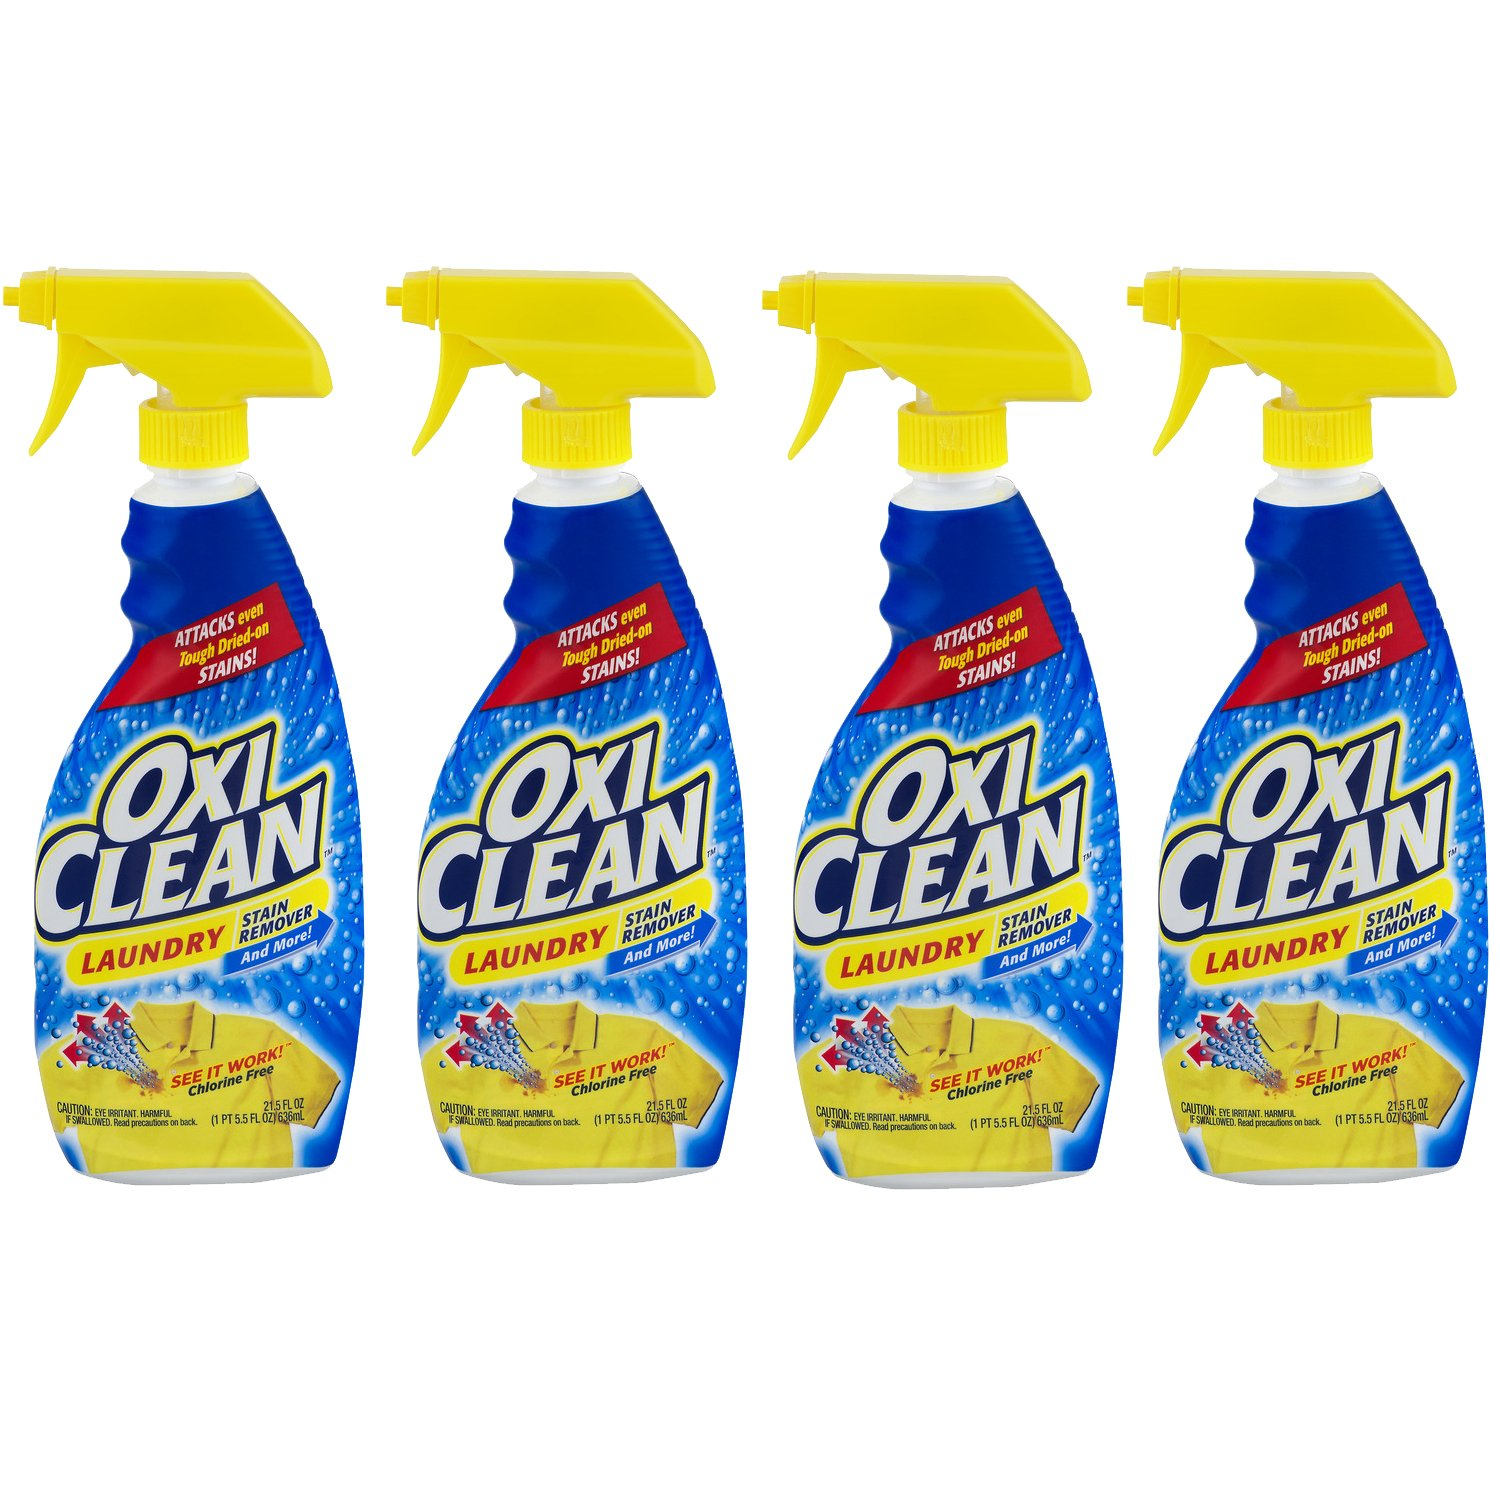 OxiClean Liquid Stain Remover, 21.5 oz, Pack of 4